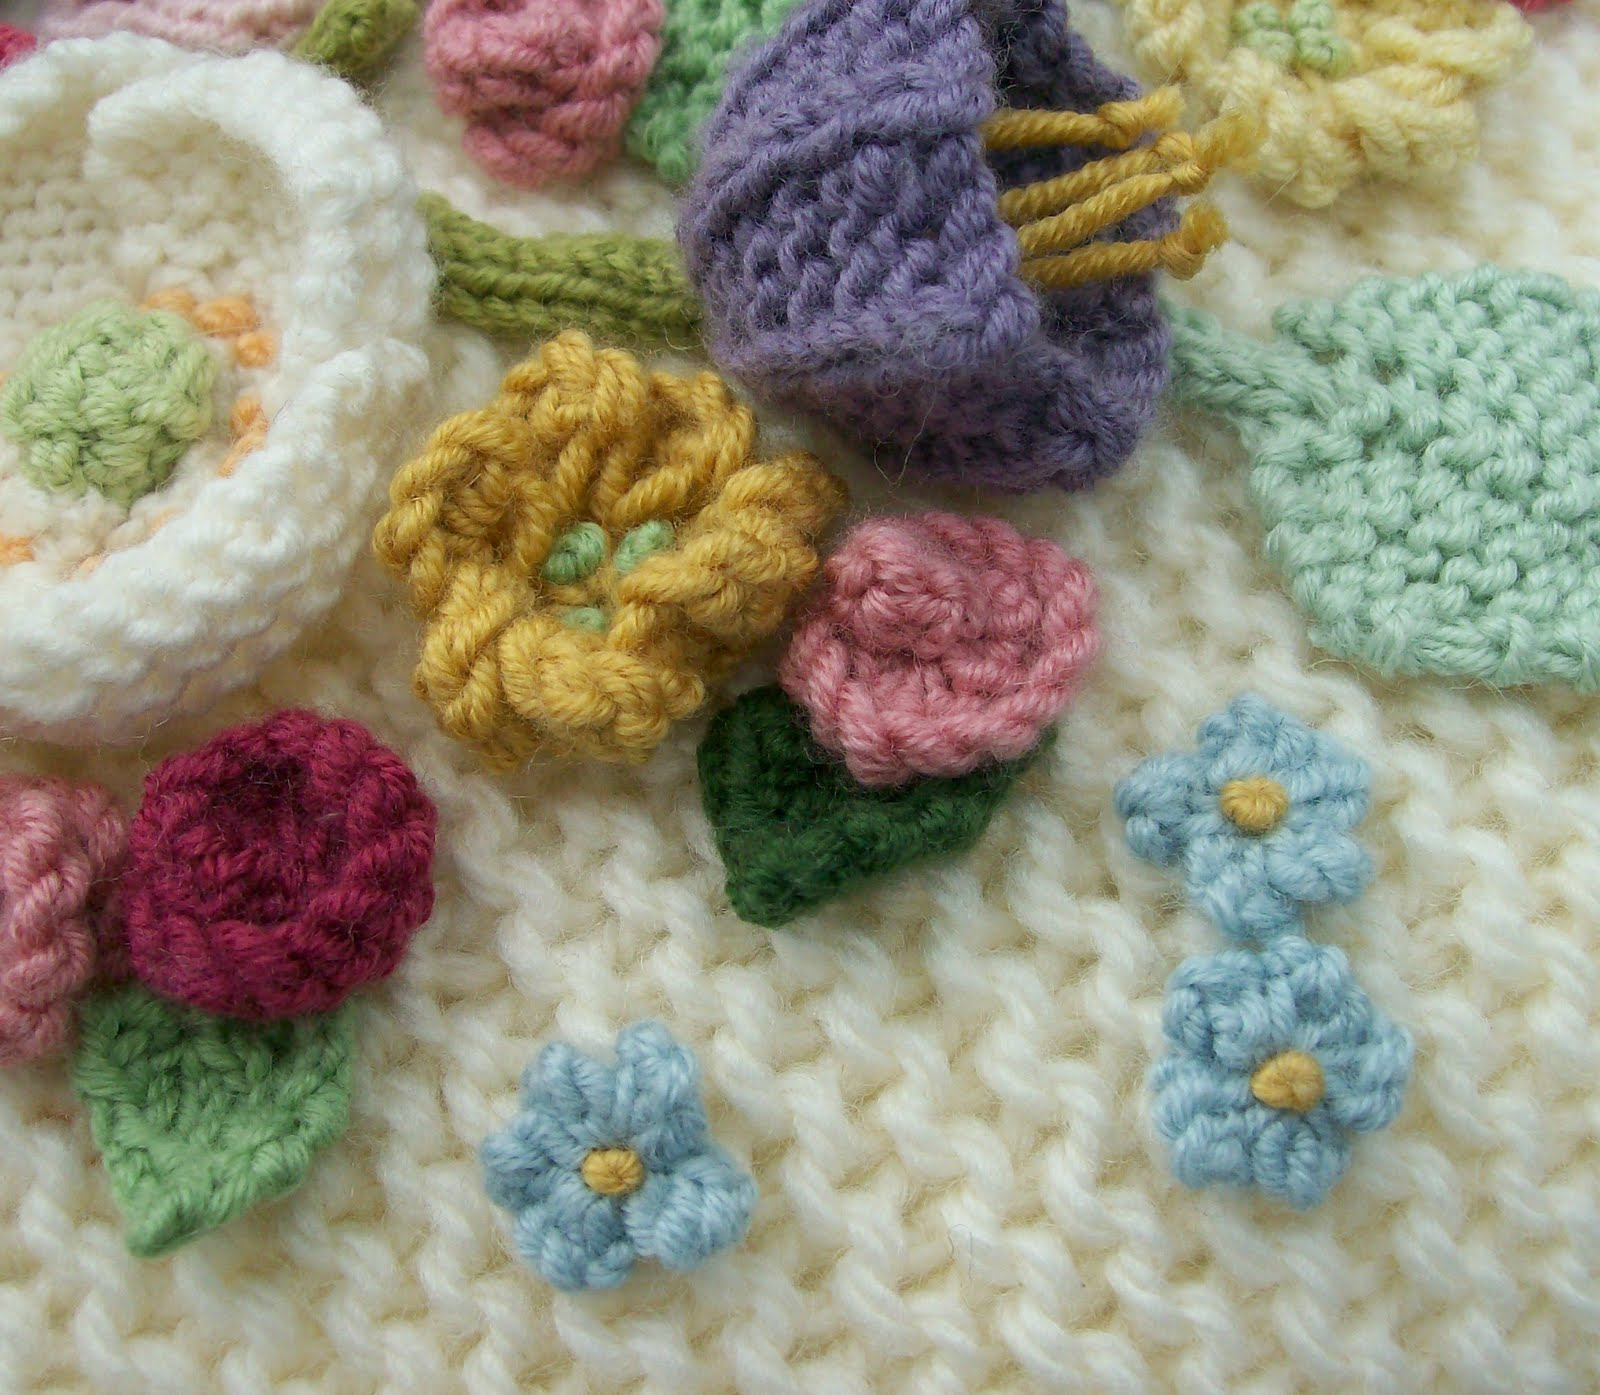 Flower Knitting Patterns Free : Knot Garden: Forget-me-not